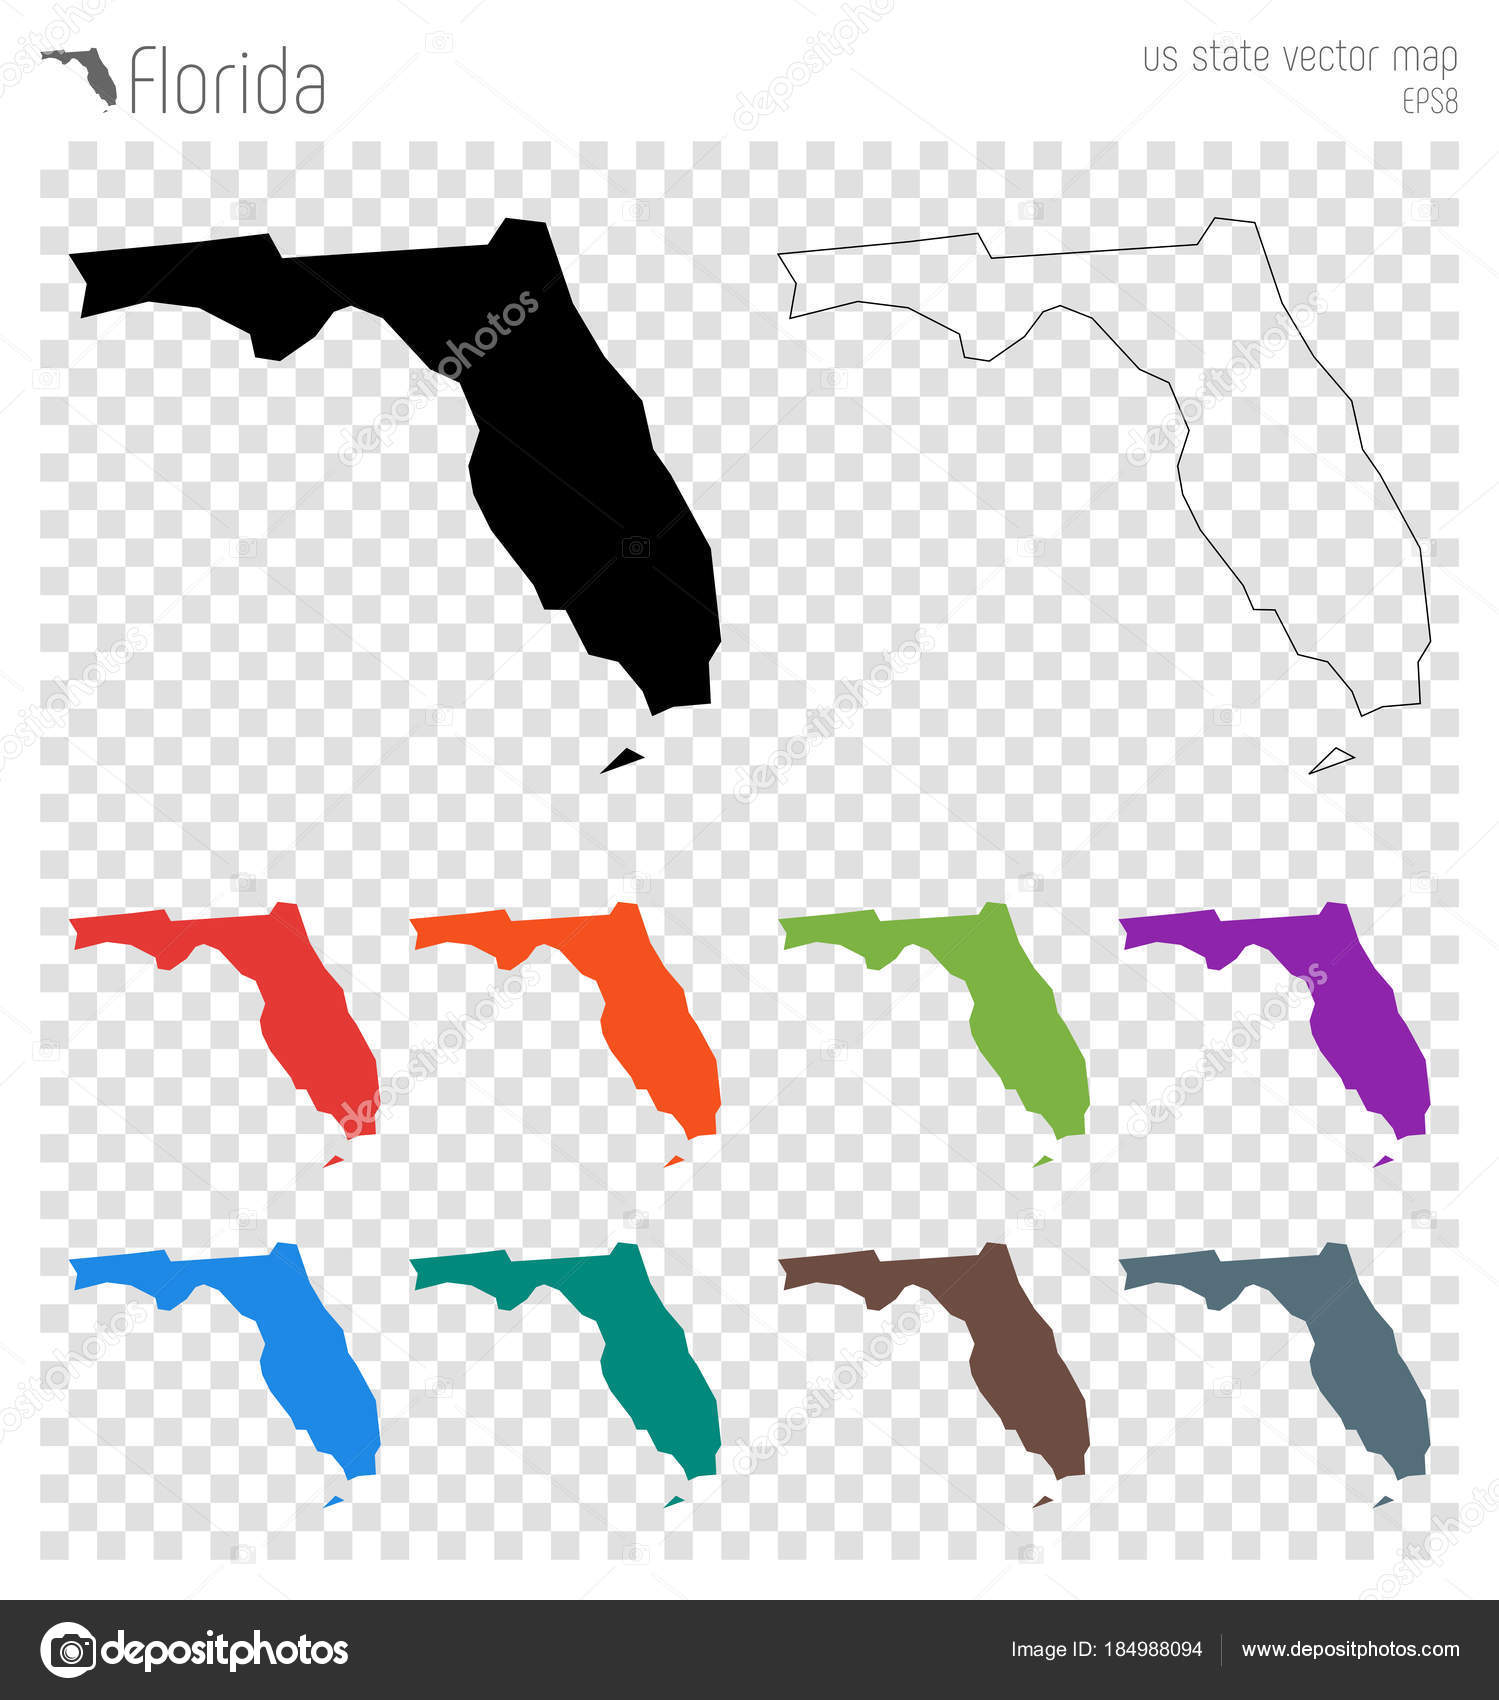 Florida high detailed map Us state silhouette icon Isolated Florida ...